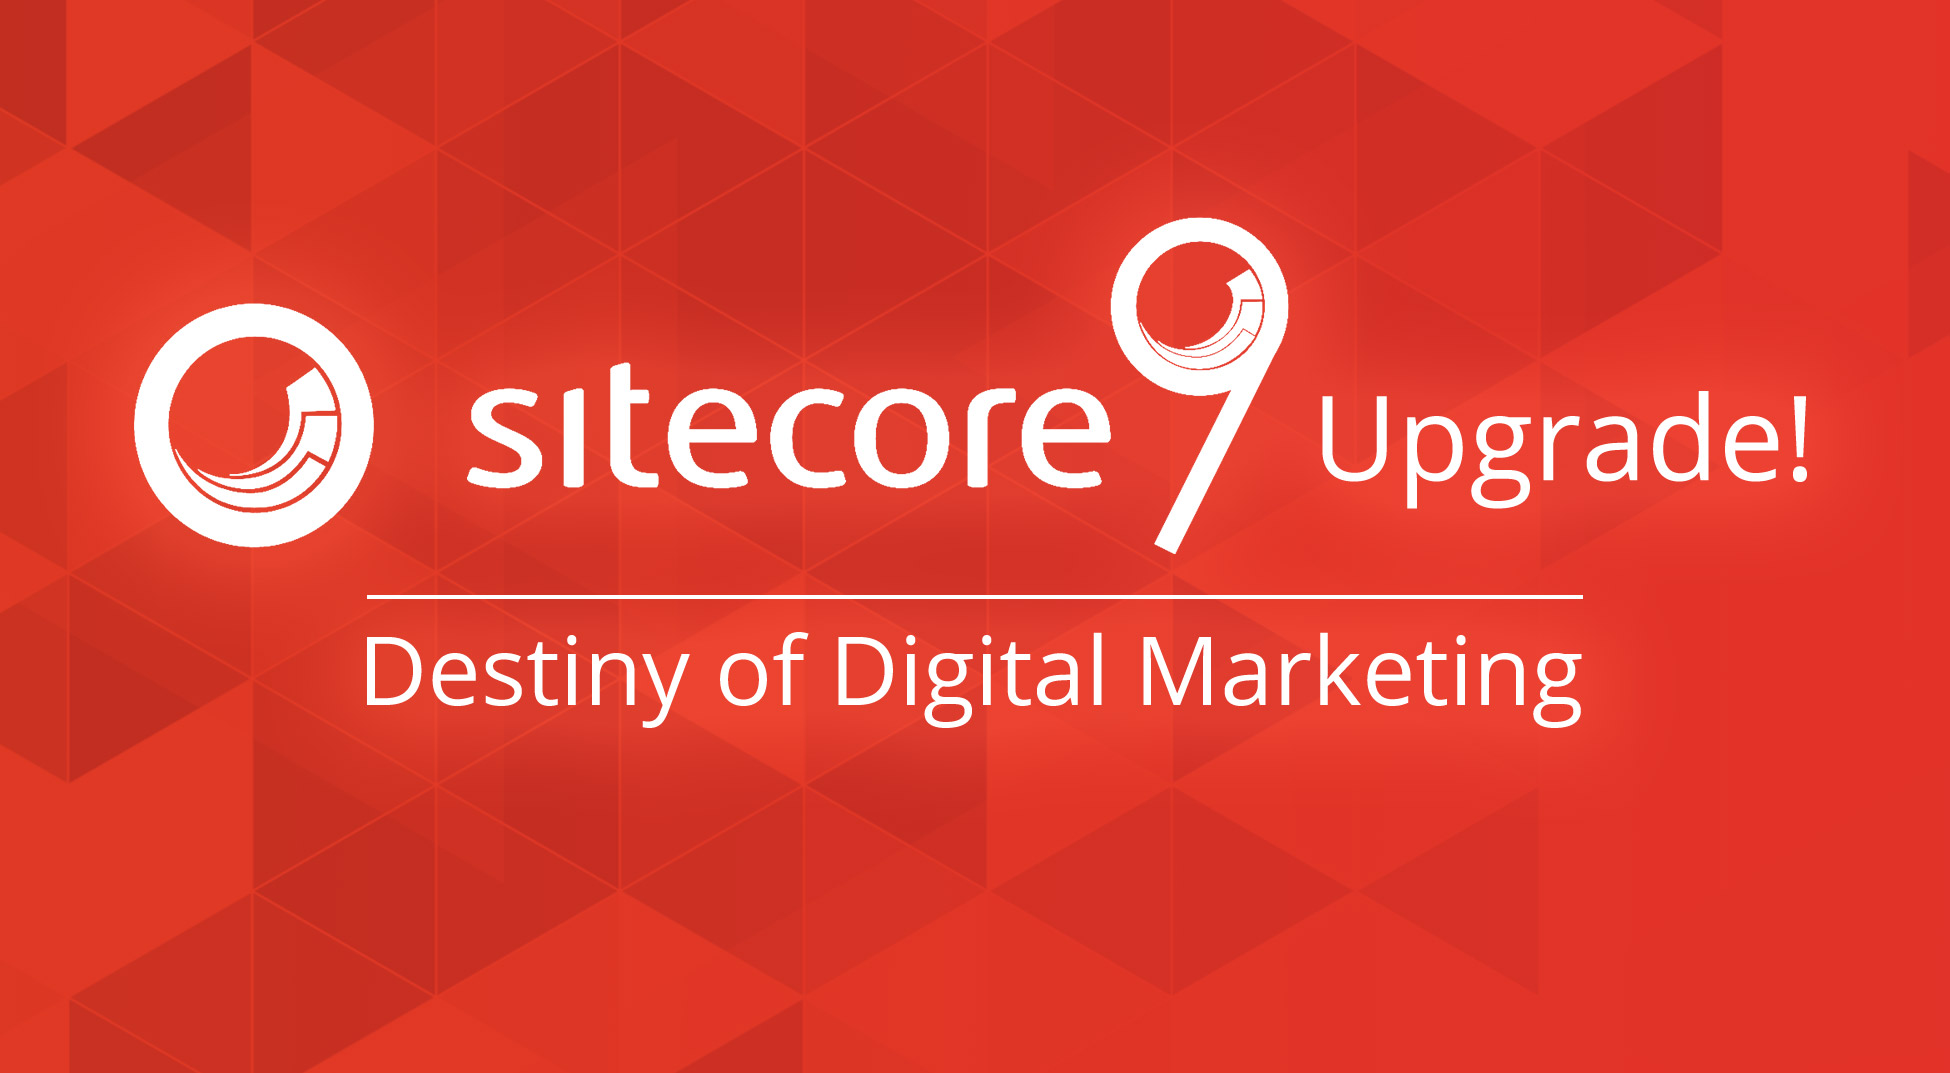 Why should Digital Marketers Opt for Sitecore 9 Upgrade?